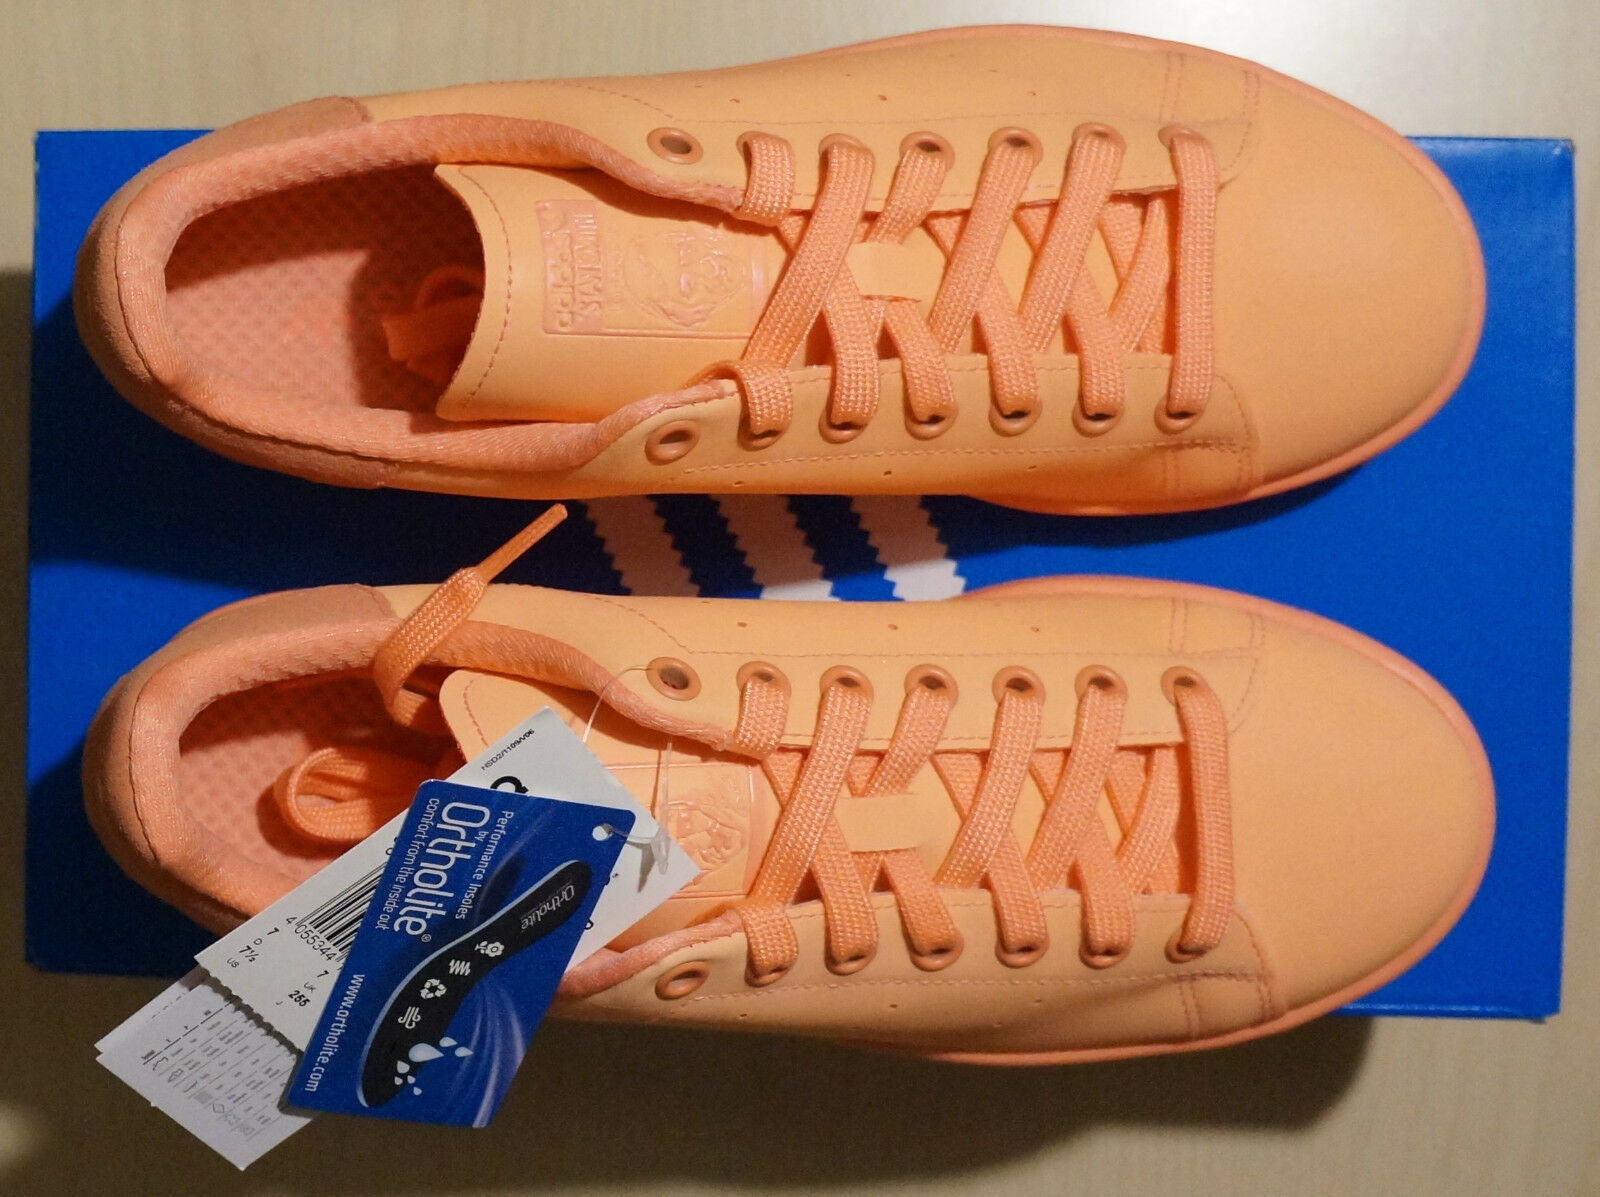 Adidas Stan Smith Adicolor sunglo/sunglo/sunglo Gr. 40 2/3, UK 7 neu & OVP